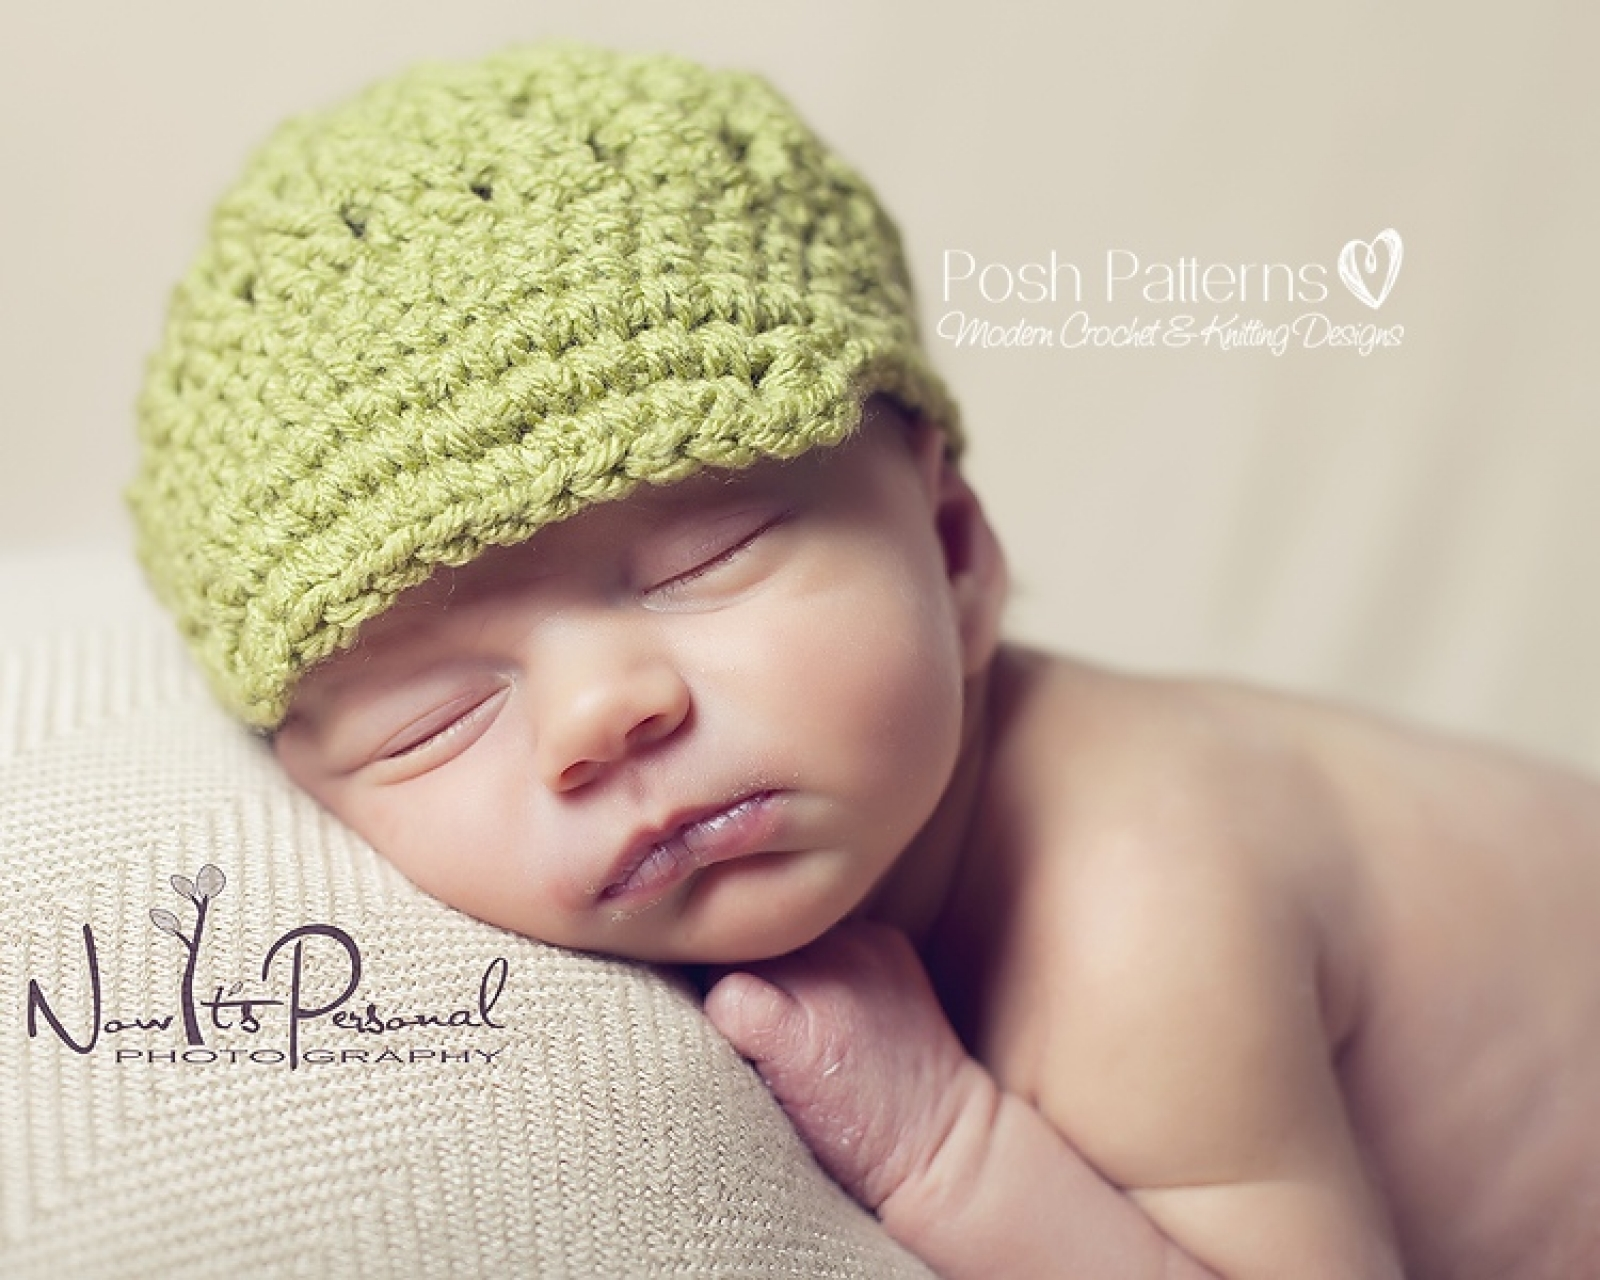 Crochet newsboy hat pattern cross stitch newborn to adult sizes crochet newsboy hat pattern cross stitch visor hat bankloansurffo Image collections